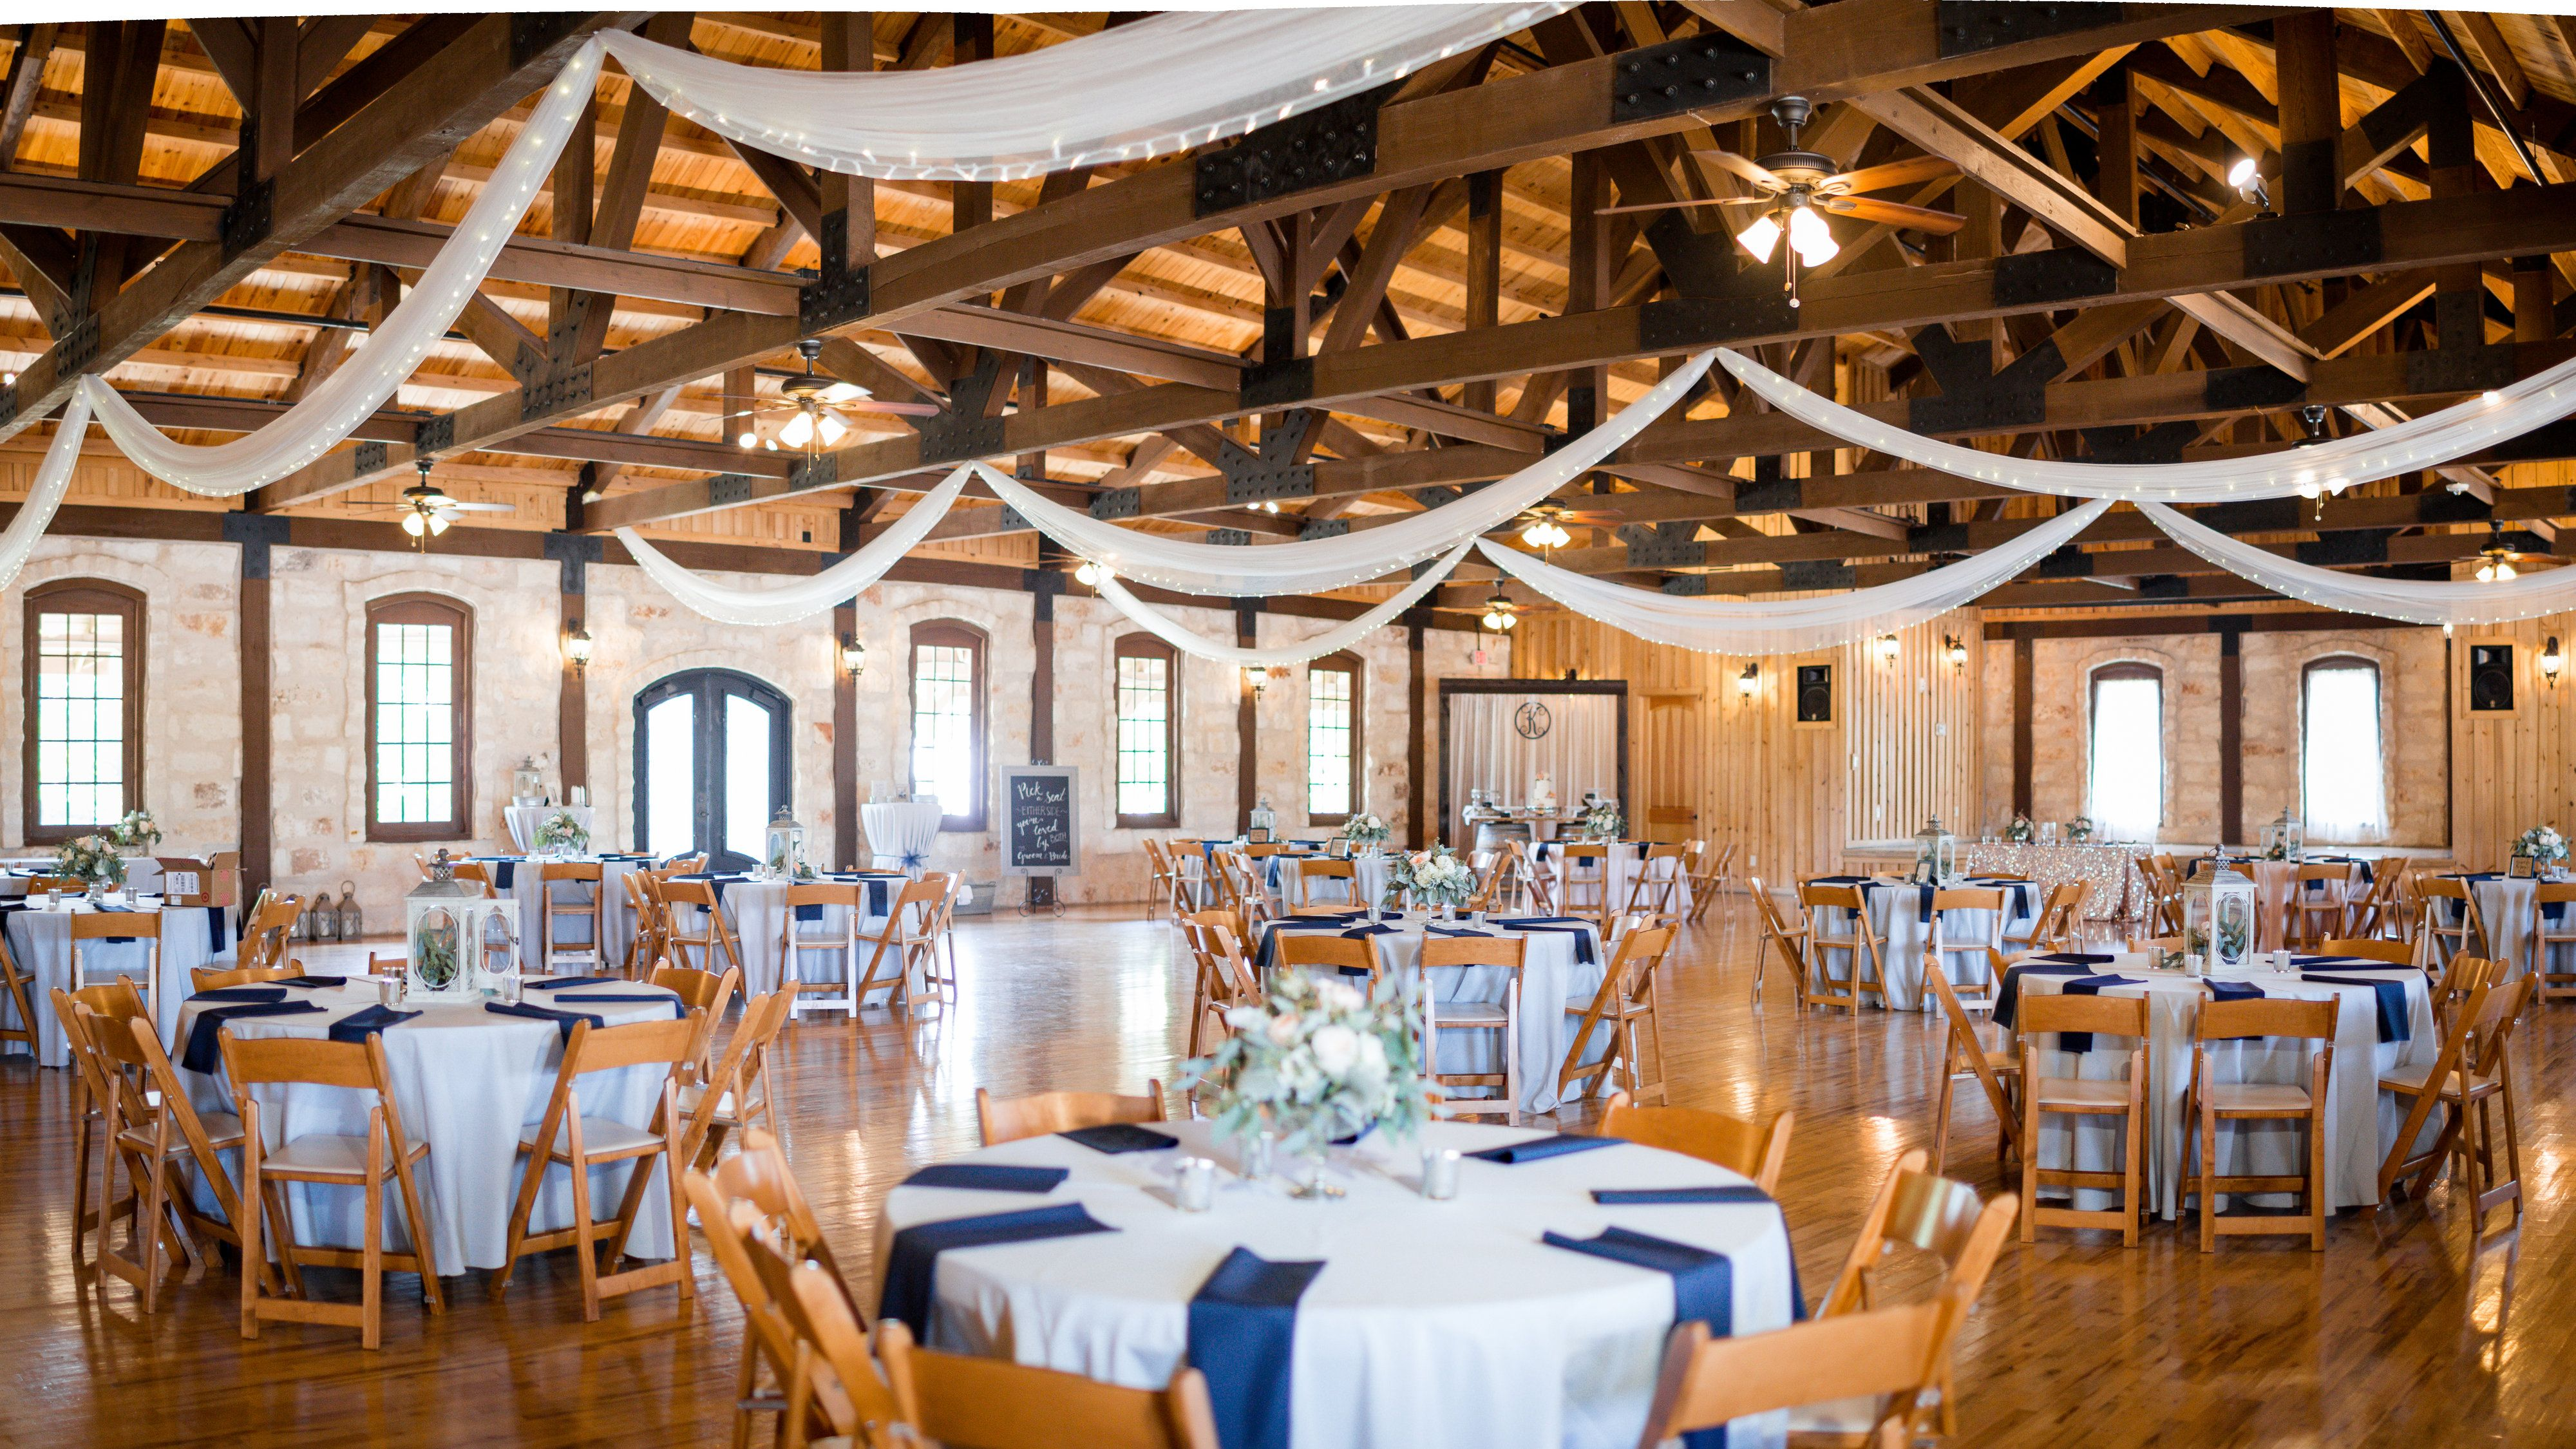 Pin On Wedding Venue Styles